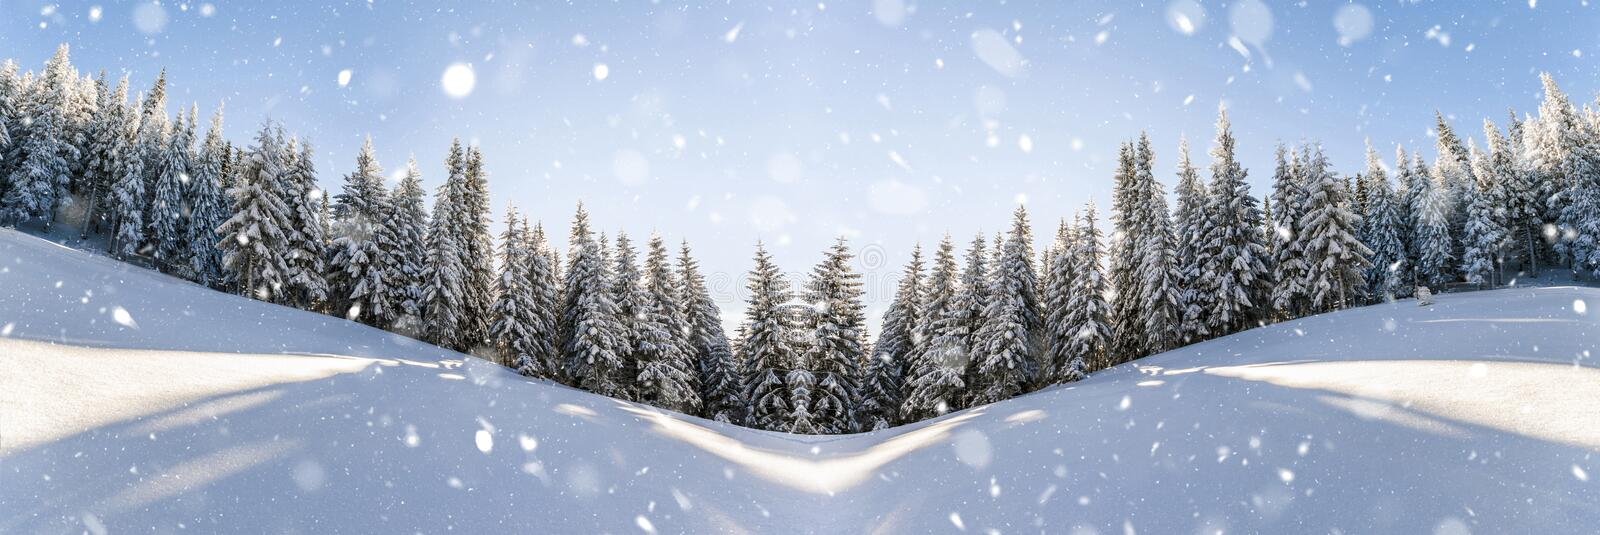 Pine trees in mountains and falling snow in fairy tale winter sunny morning. Soft ligth effect. royalty free stock photos